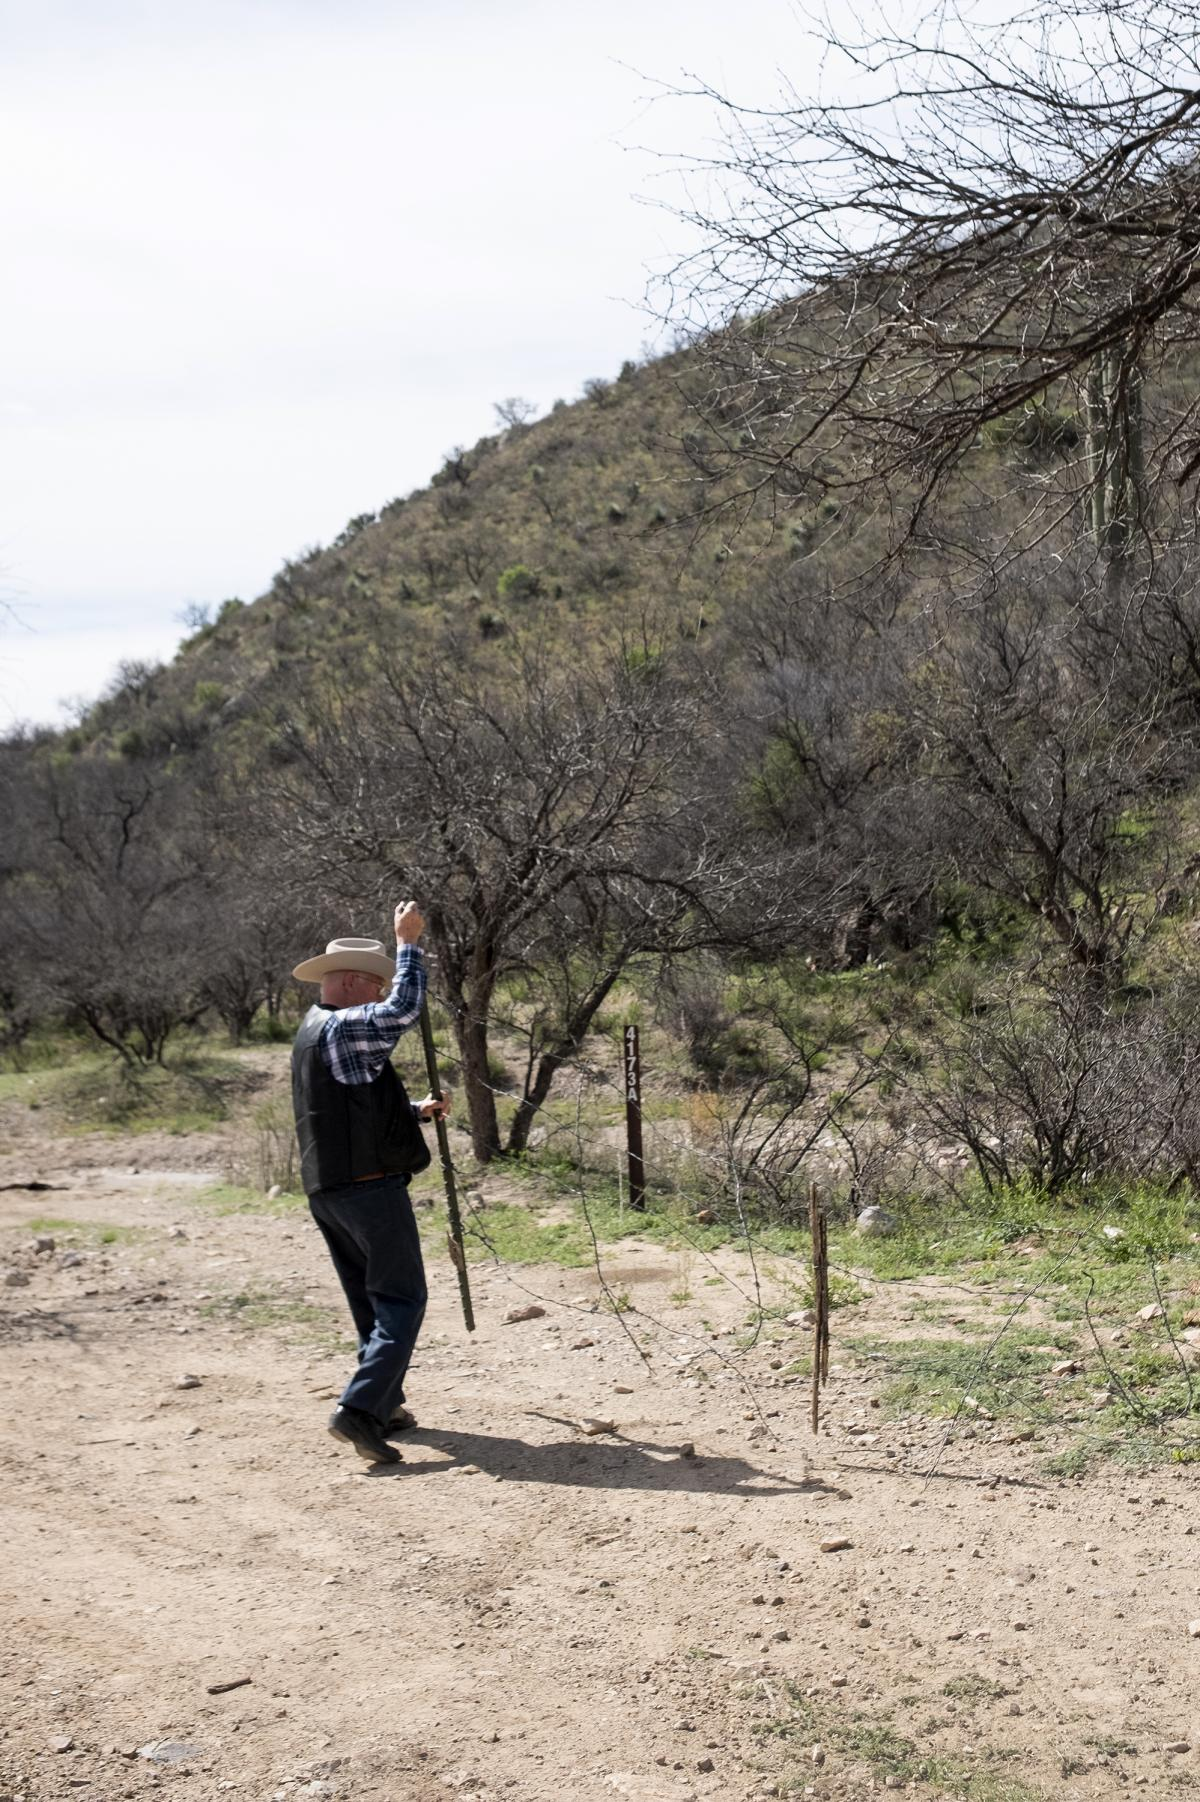 Rancher Jim Chilton opens a gate near the U.S.-Mexico border outside Arivaca. His ranchland  extends five miles along the border, which is marked by a waist-high fence of four strands of barbed wire.